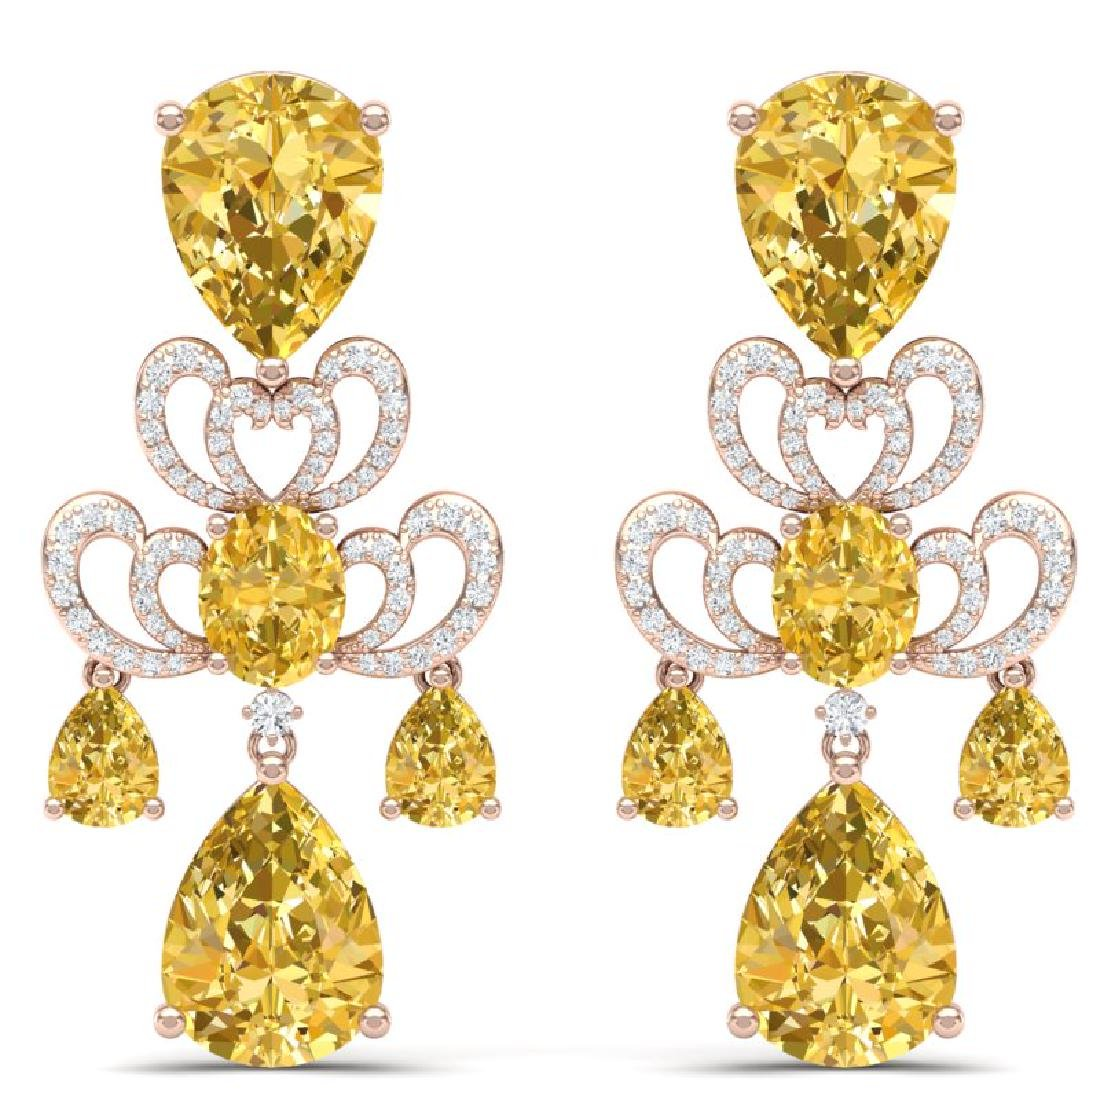 55.89 CTW Royalty Canary Citrine & VS Diamond Earrings